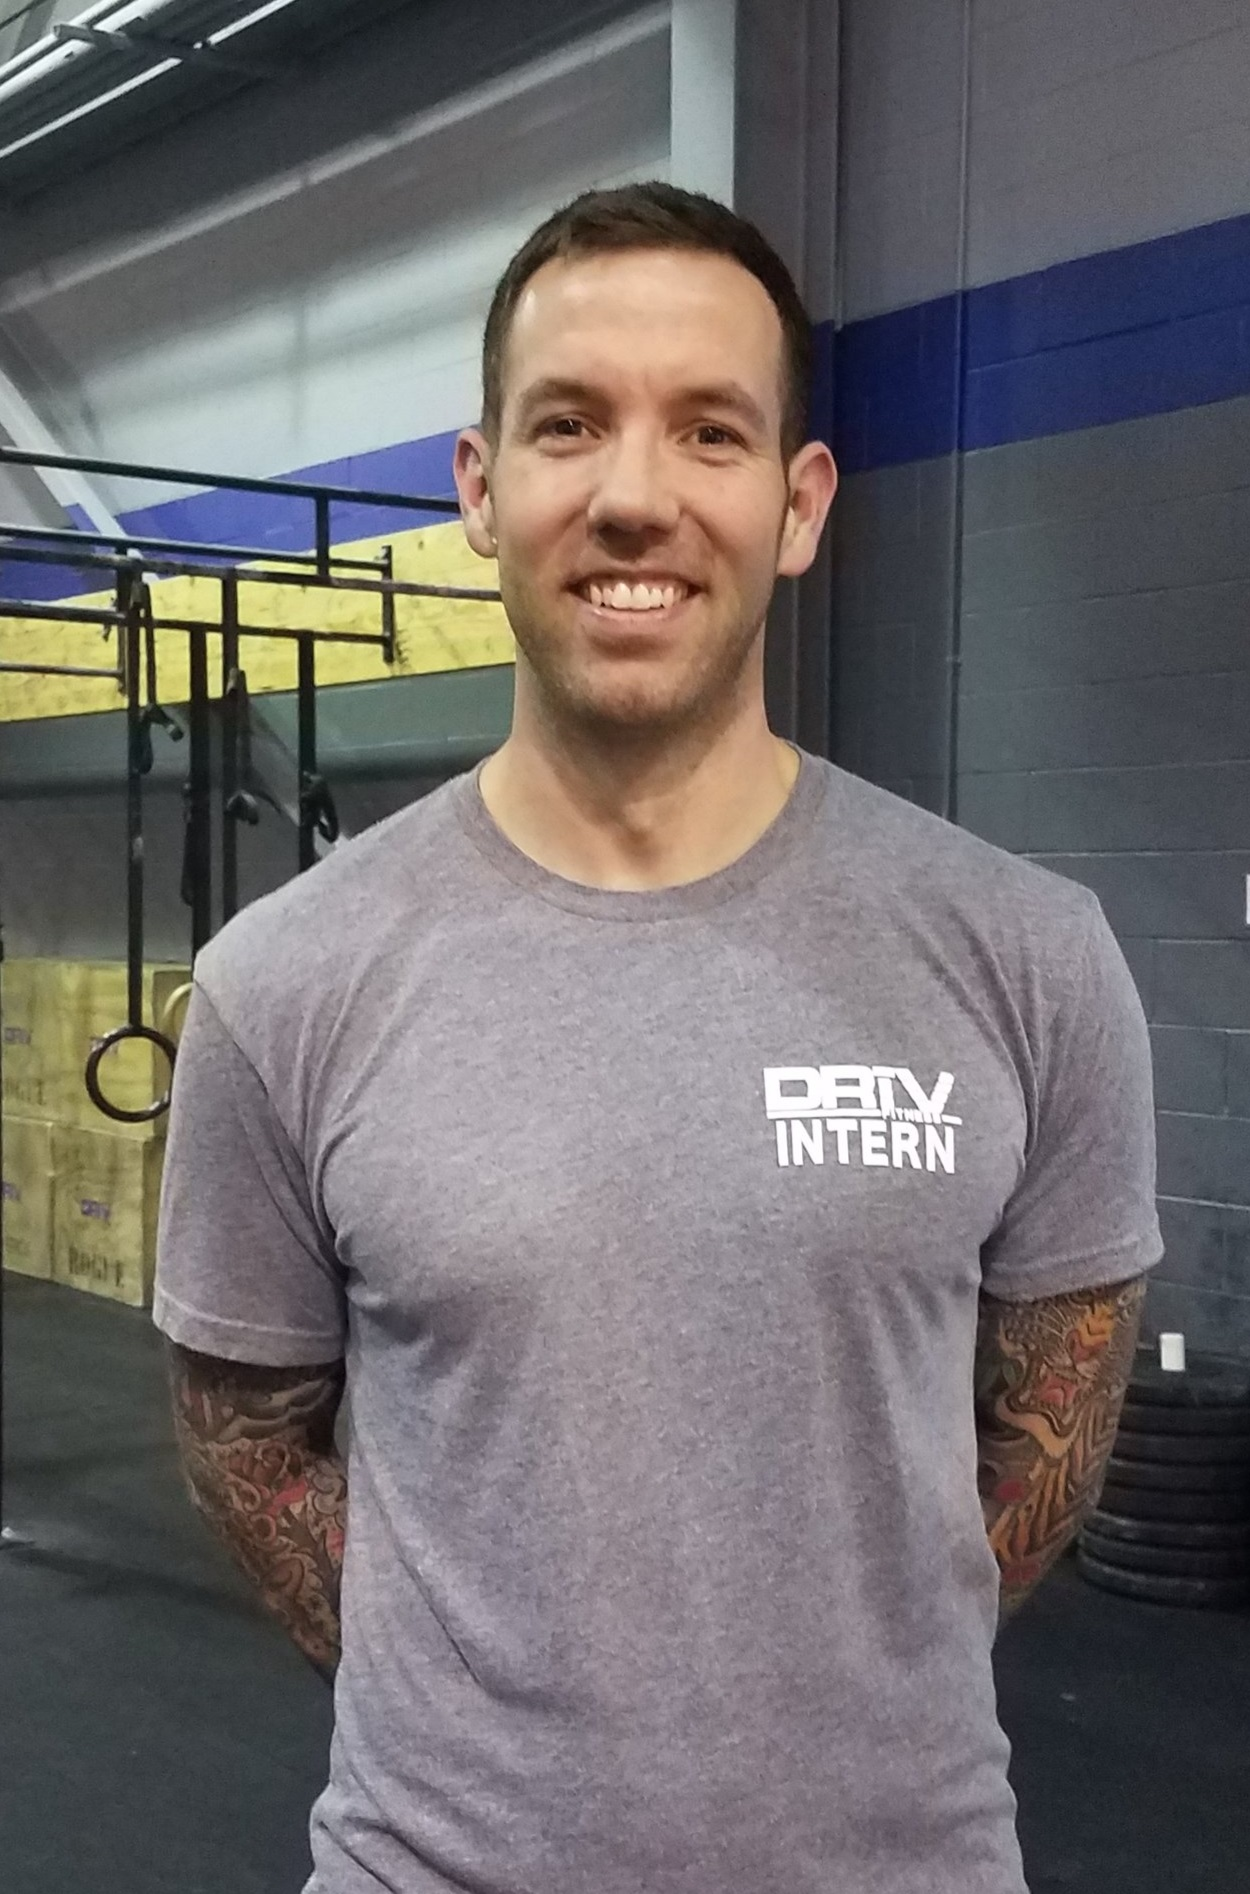 Sean Schoeneman Coach, F.I.T. Director - CrossFit Courses - Level 1, 2, 3 & Masters